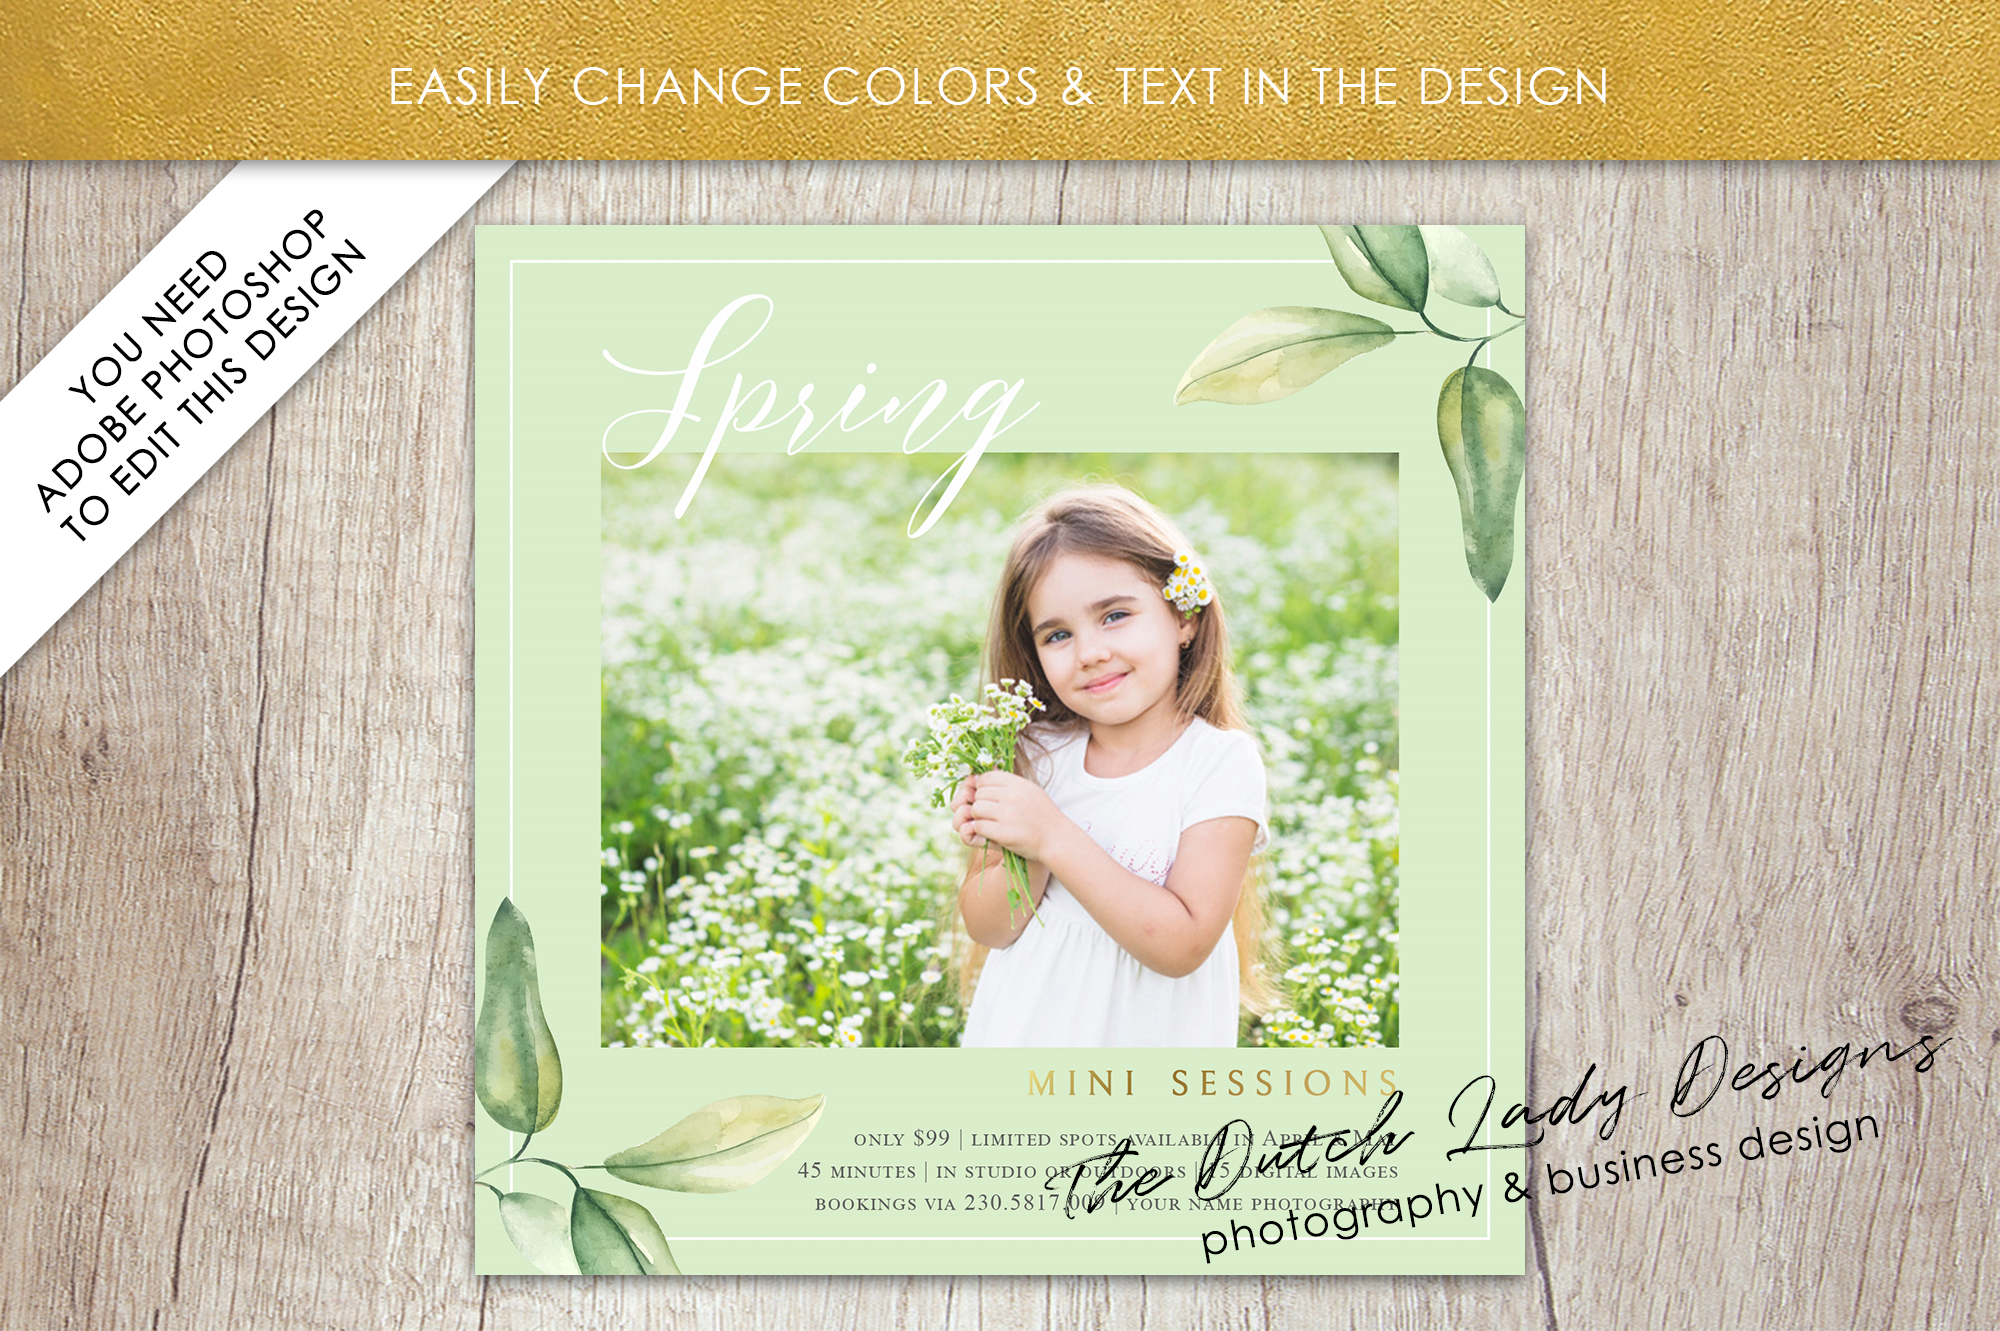 PSD Spring Photo Session Card Template - Design #35 example image 3